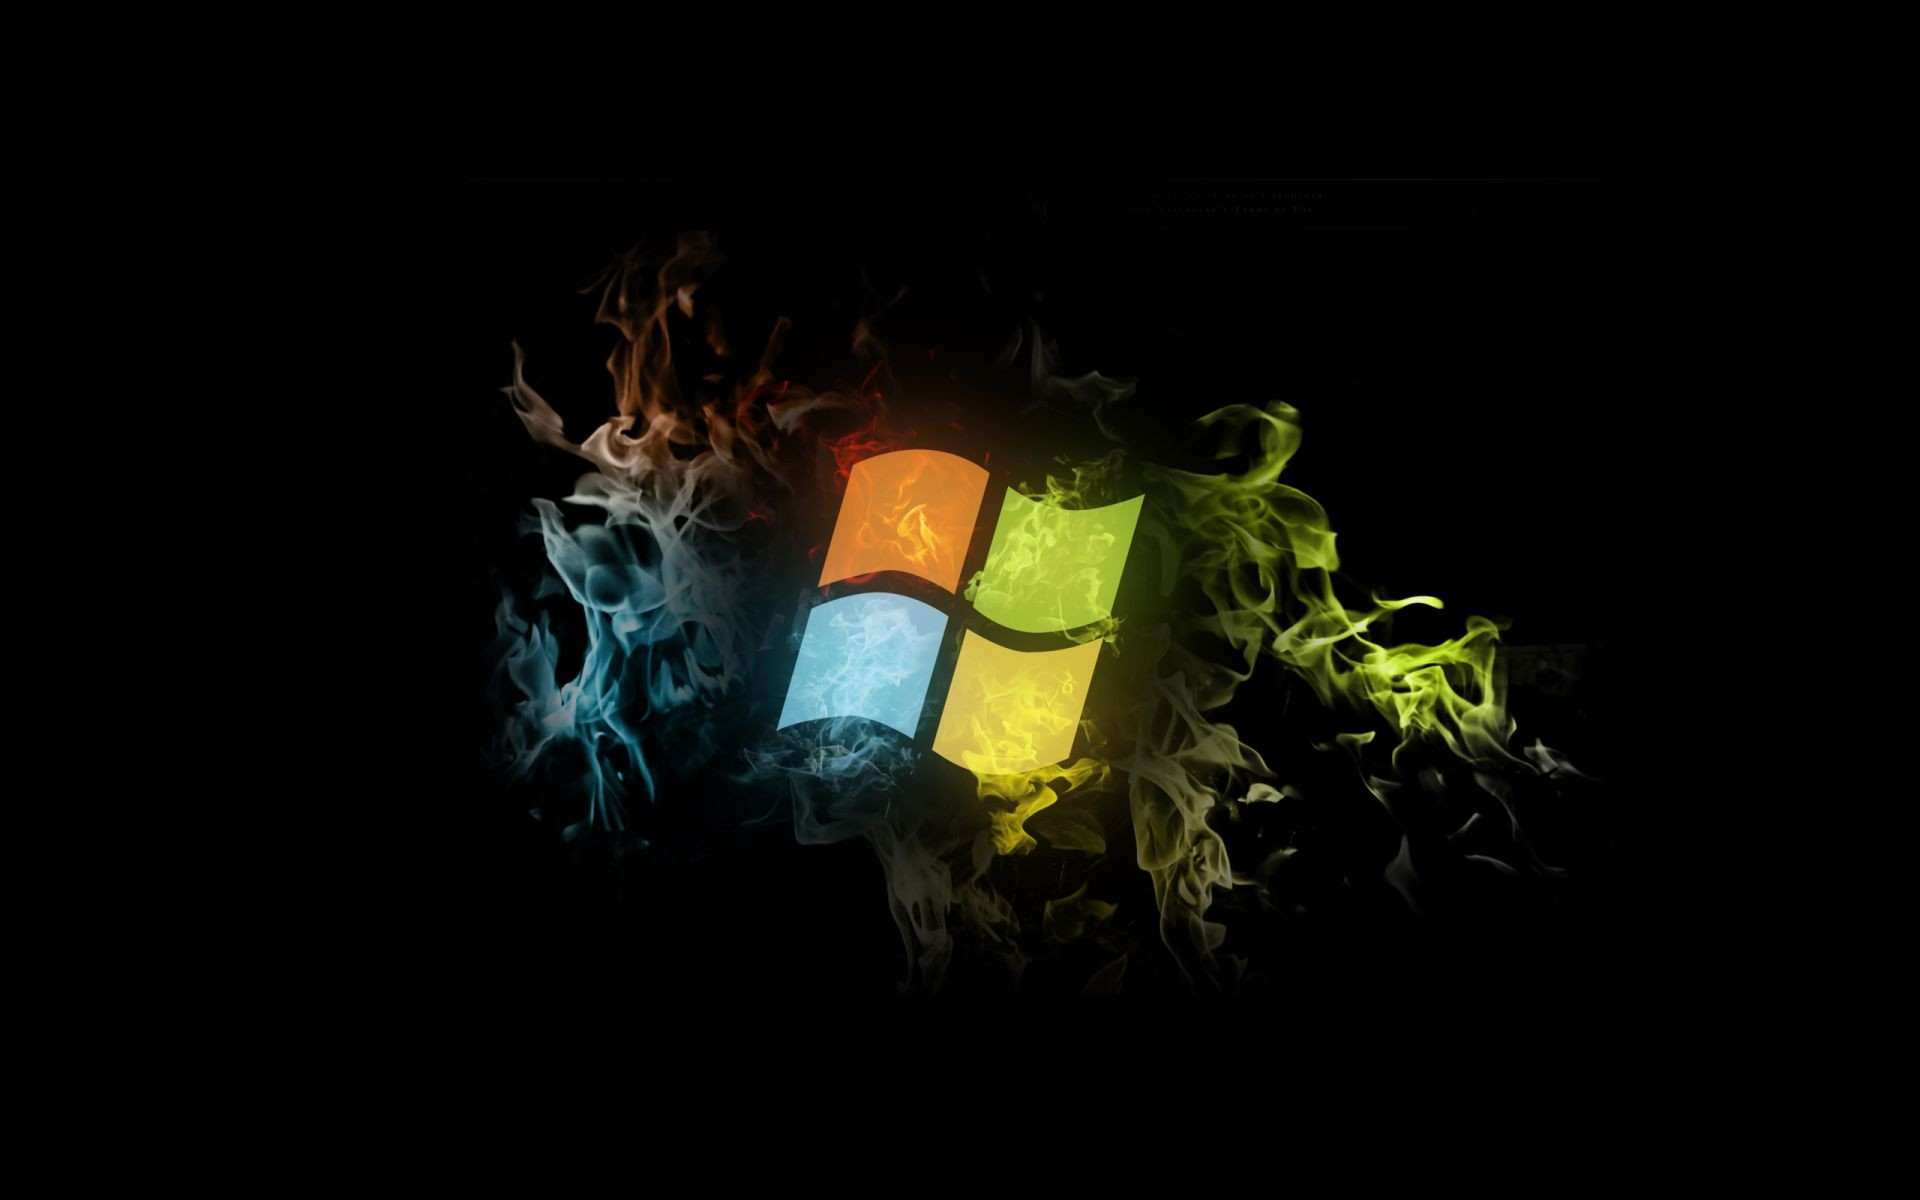 1920x1200 Windows Logo With Color Splash | HD Brands and Logos Wallpaper Free  Download ...